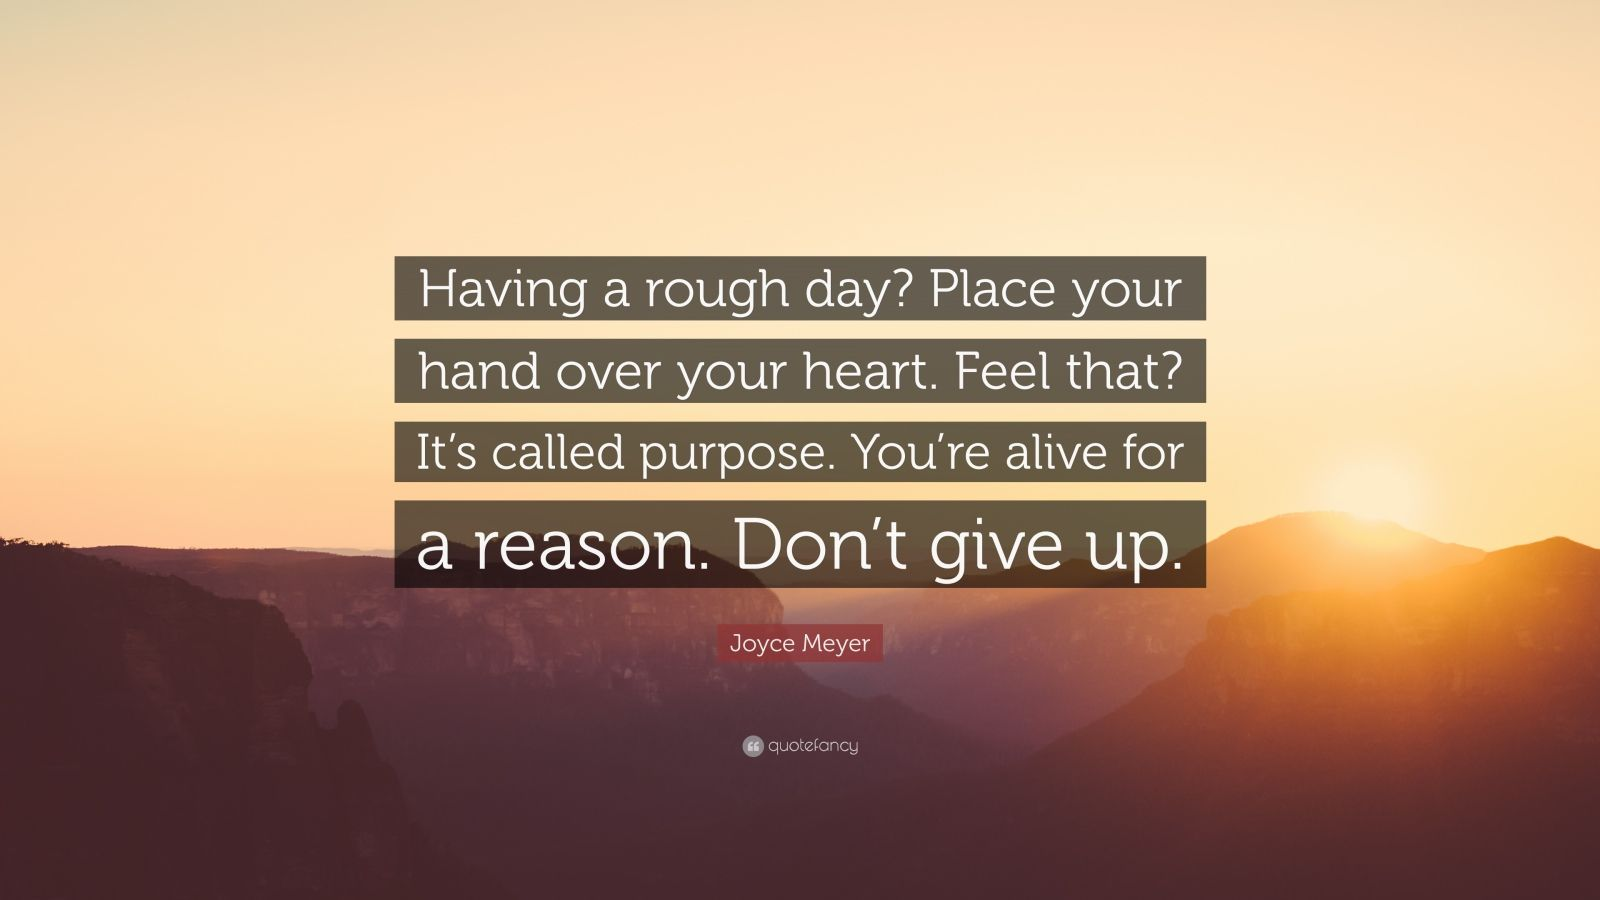 """Giving Up Quotes: """"Having a rough day? Place your hand over your heart. Feel that? It's called purpose. You're alive for a reason. Don't give up."""" — Joyce Meyer"""